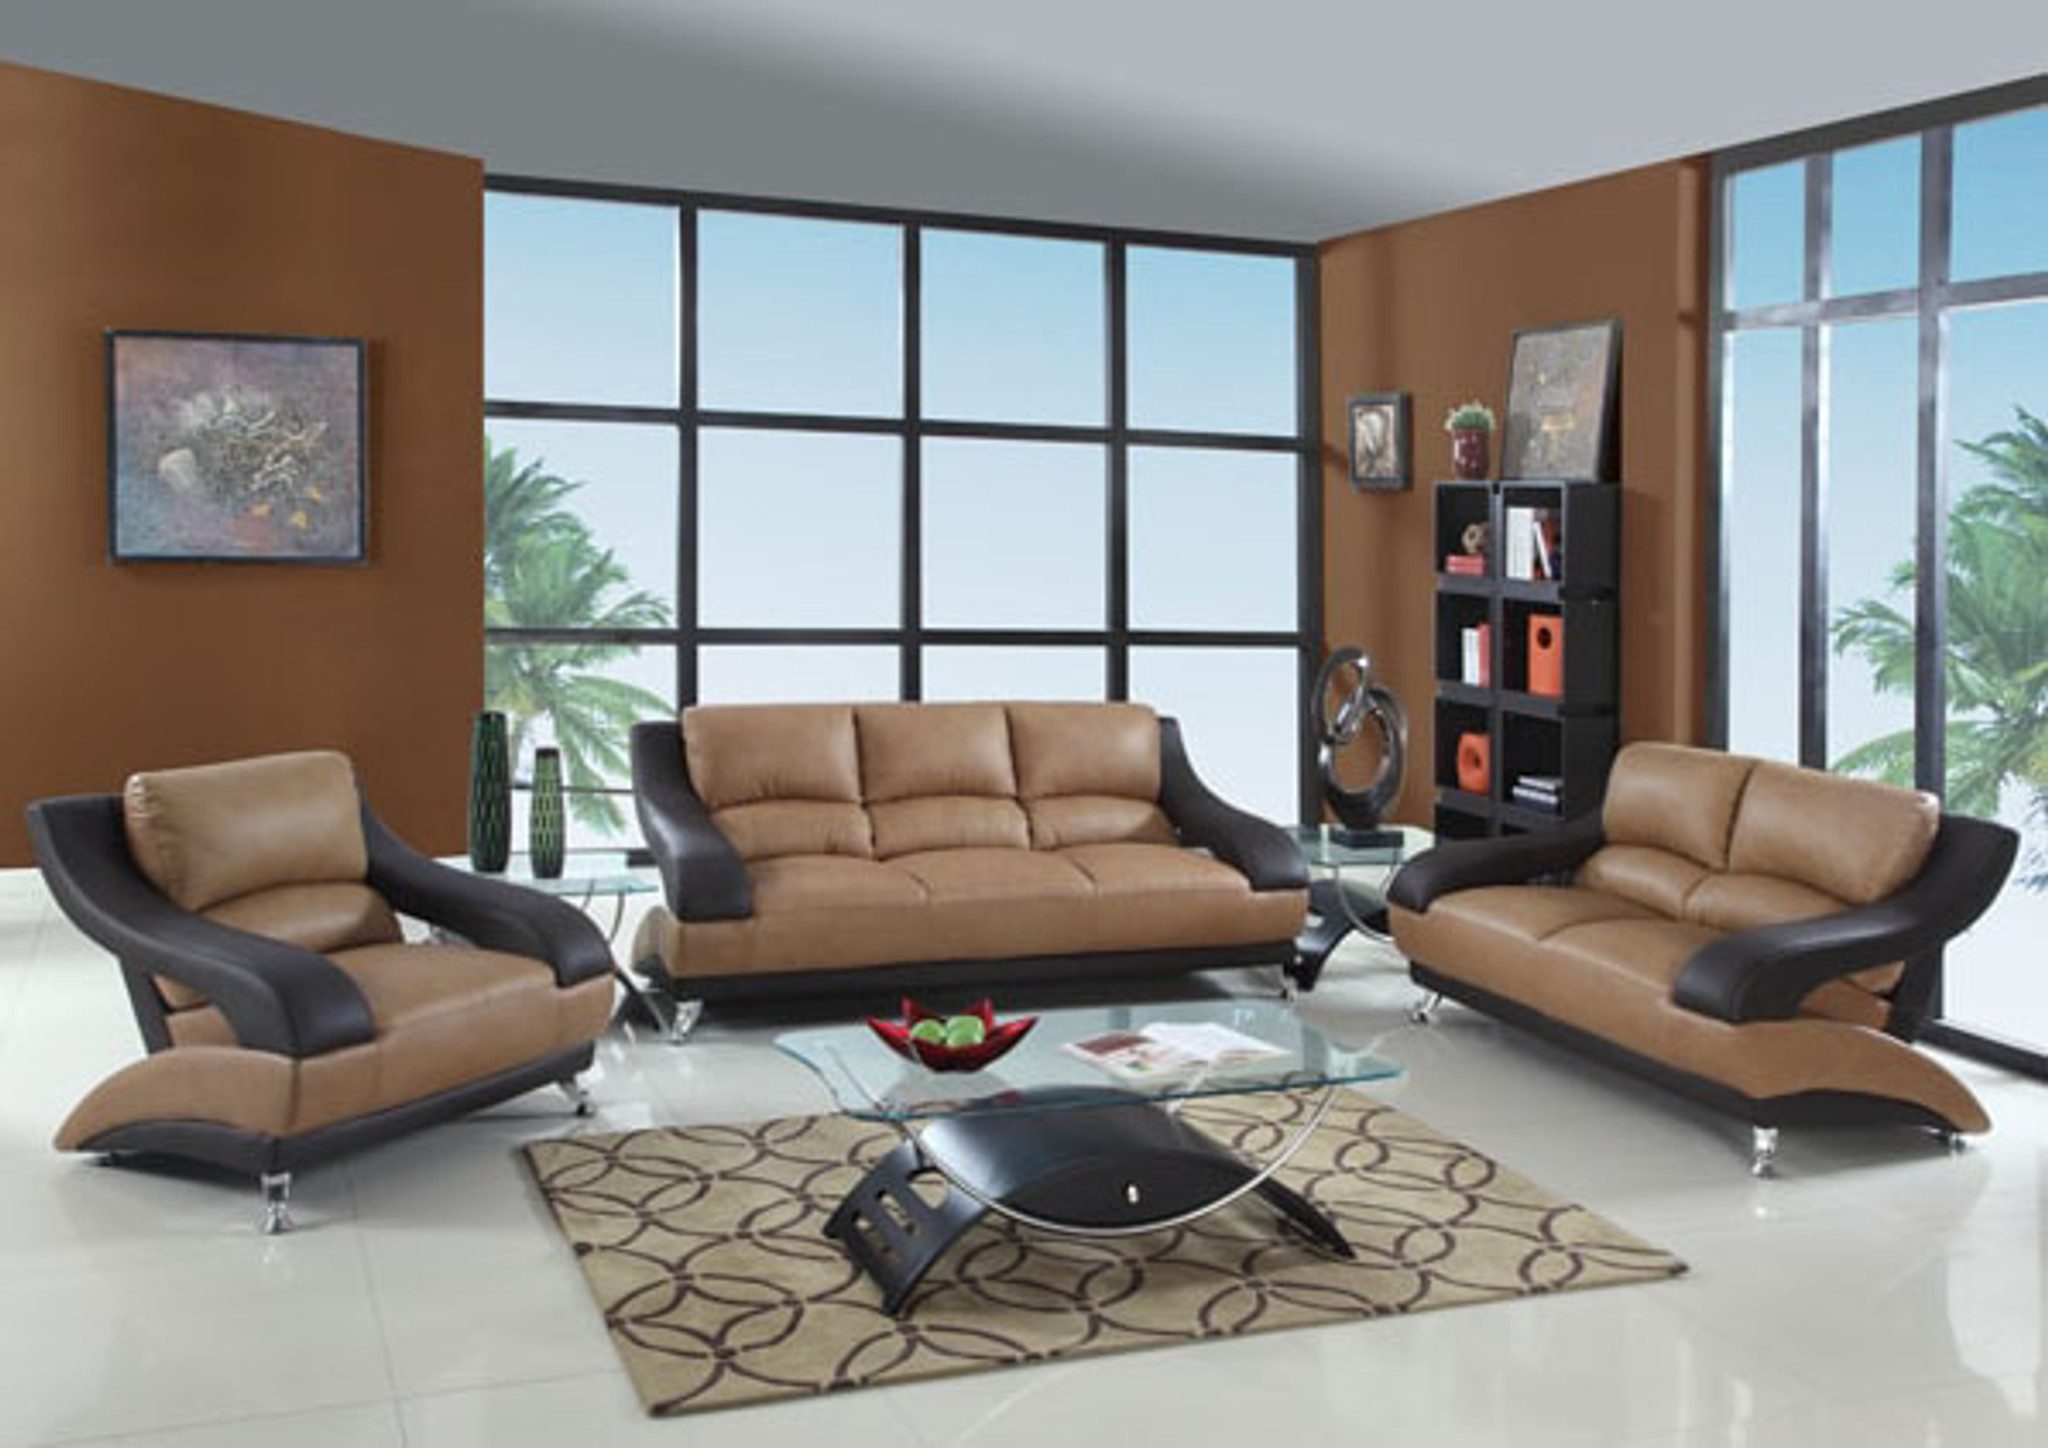 - KASSA MALL HOME FURNITURE - U982 TAN/BROWN - TAN BROWN LEATHER